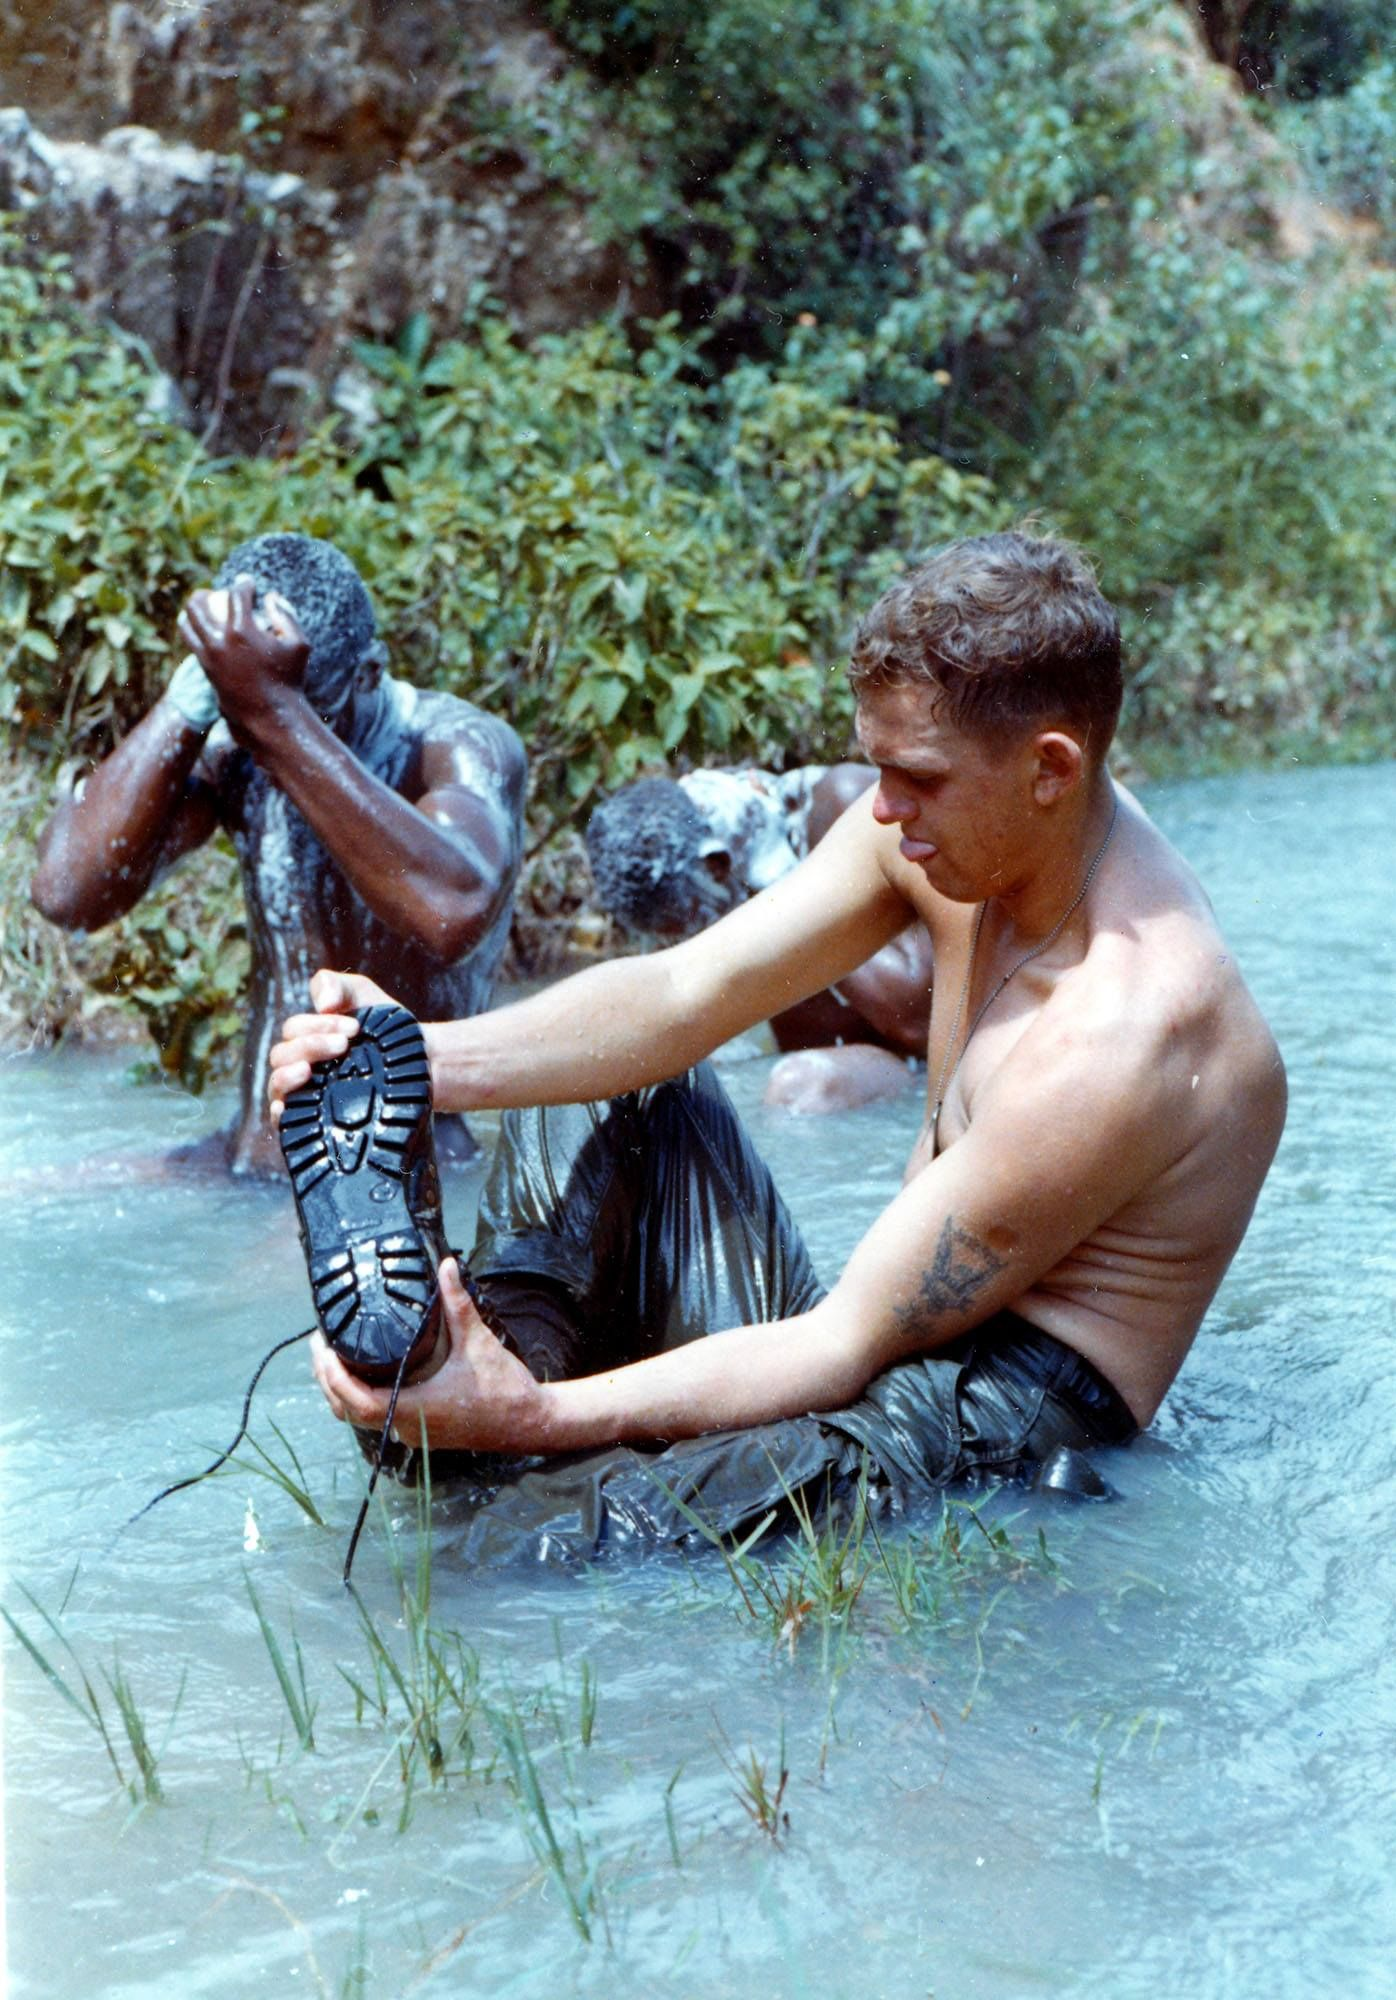 Riflemen With A Co 1st Bn 8th Cav 1st Bde Cool Off